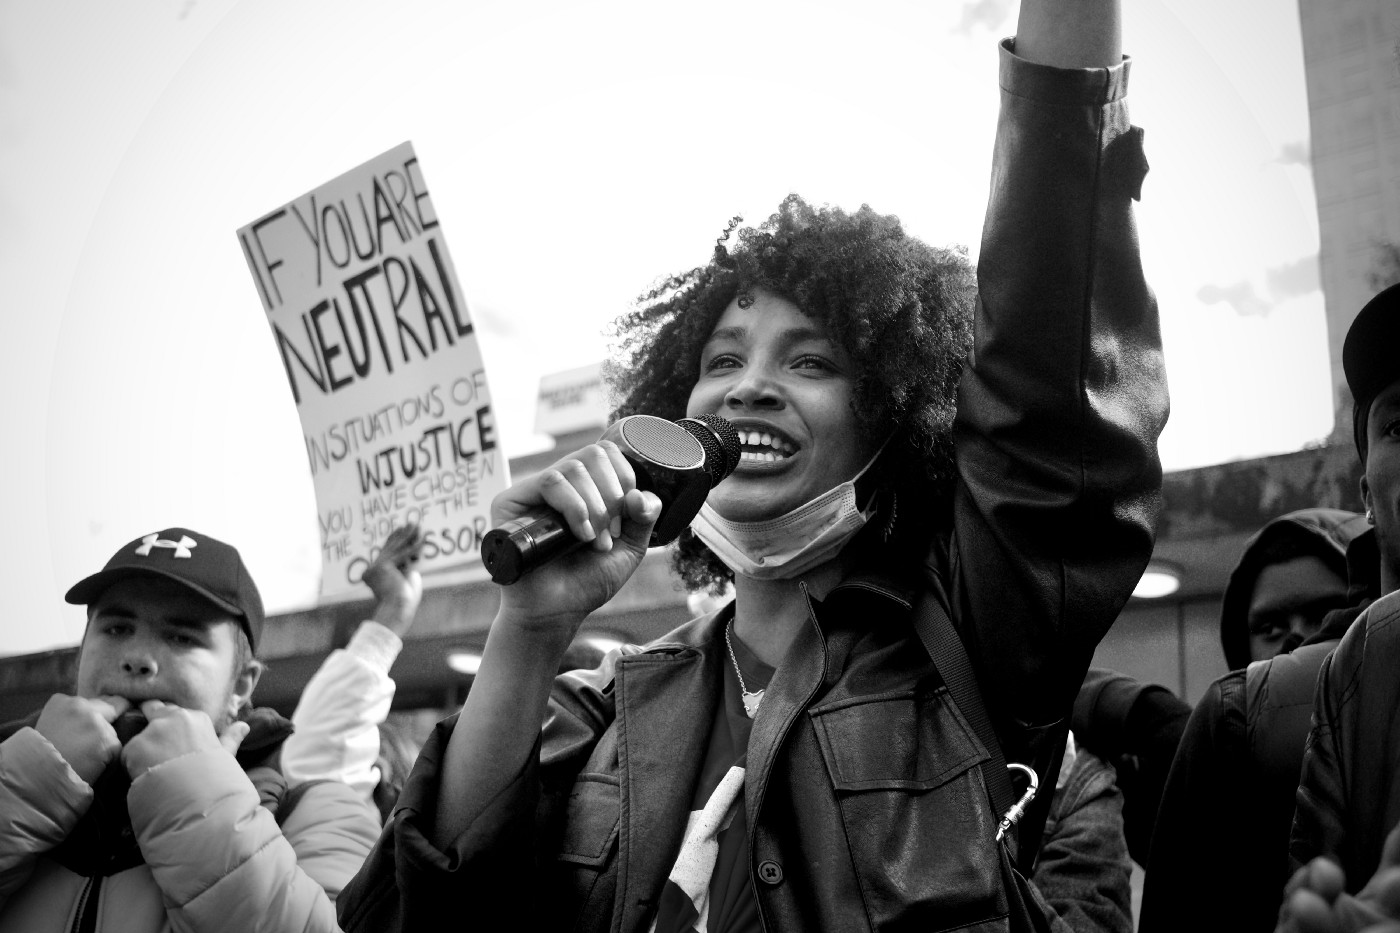 Black and white photo of a Black woman speaking into a microphone at a protest.